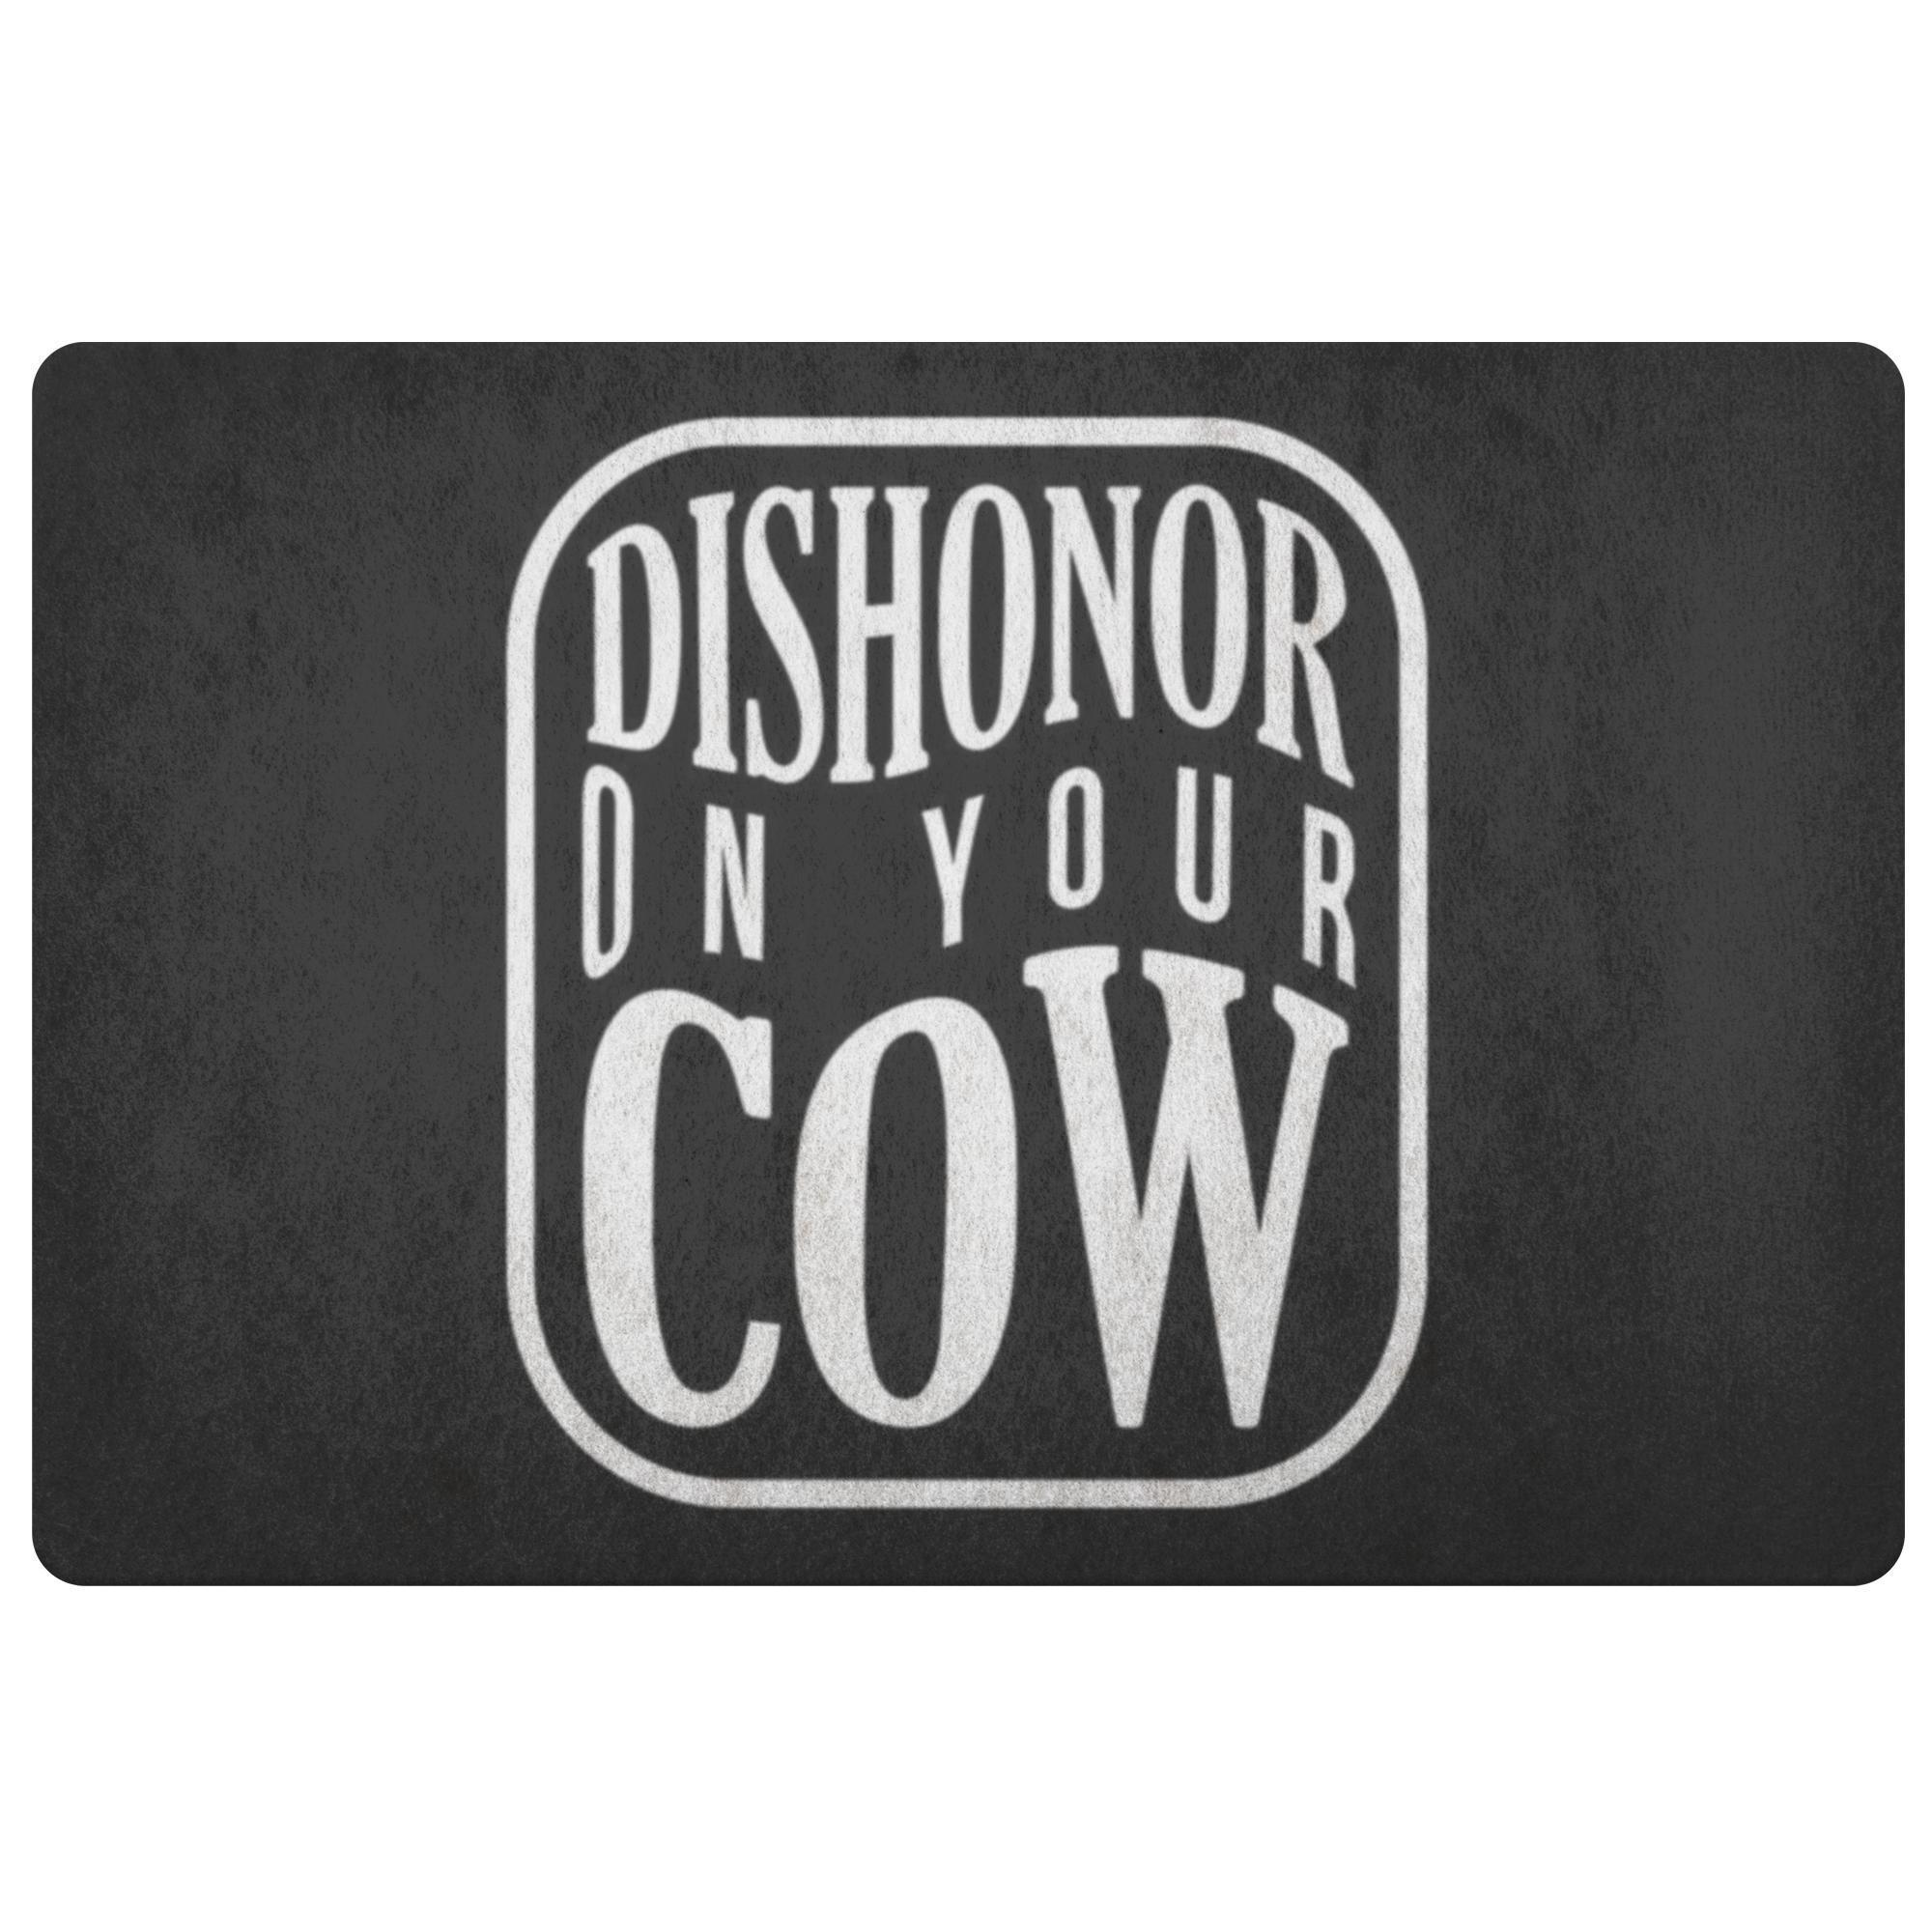 Dishonor On Your Cow 18X26 Door Mat Funny Gift Idea Sarcastic Humor Snarky Gag-Doormat-Black-JoyHip.Com